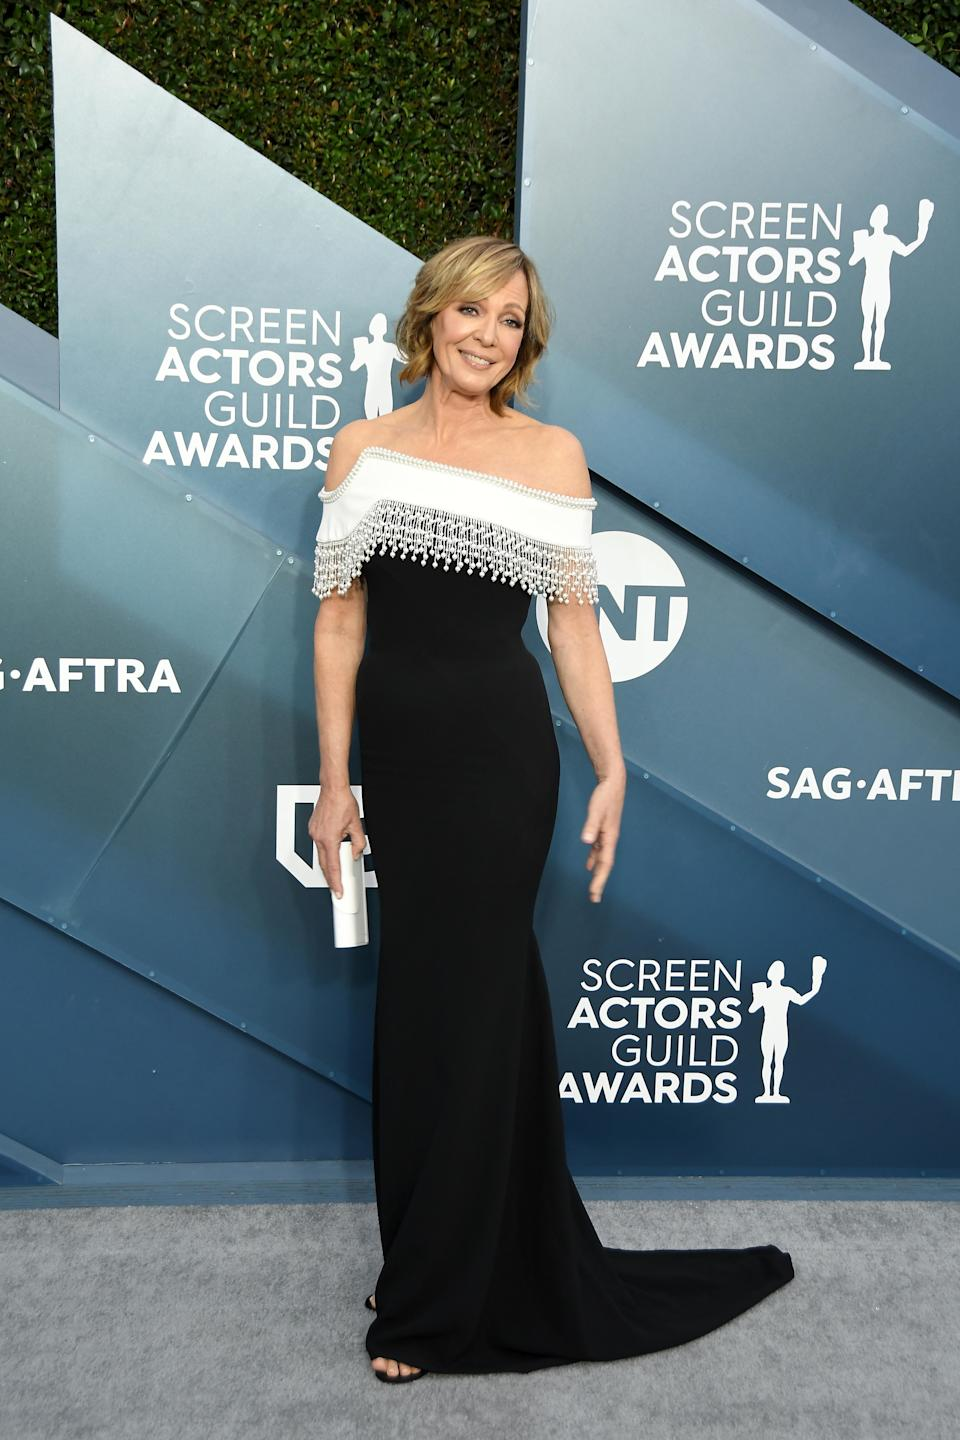 Allison Janney arrives for the 26th Annual Screen Actors Guild Awards at The Shrine Auditorium on January 19, 2020 in Los Angeles, California. (Photo by Sthanlee B. Mirador/Sipa USA)